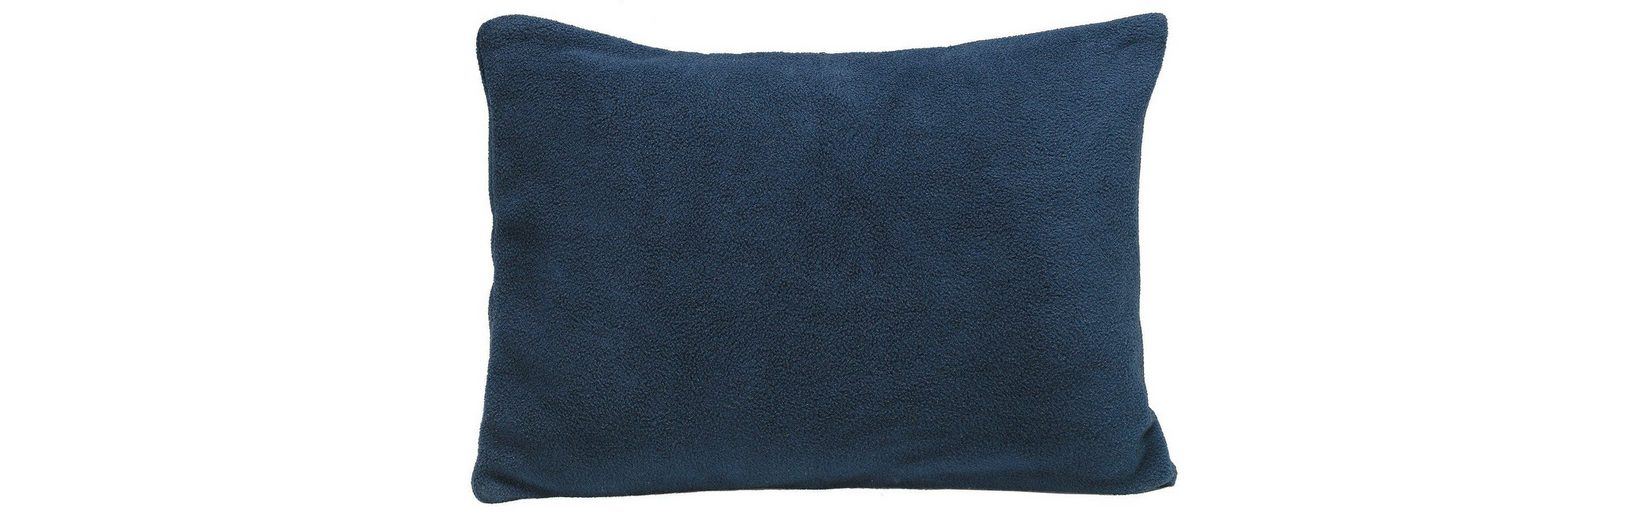 Cocoon Schlafsack »Pillow Case Microfleece Large«